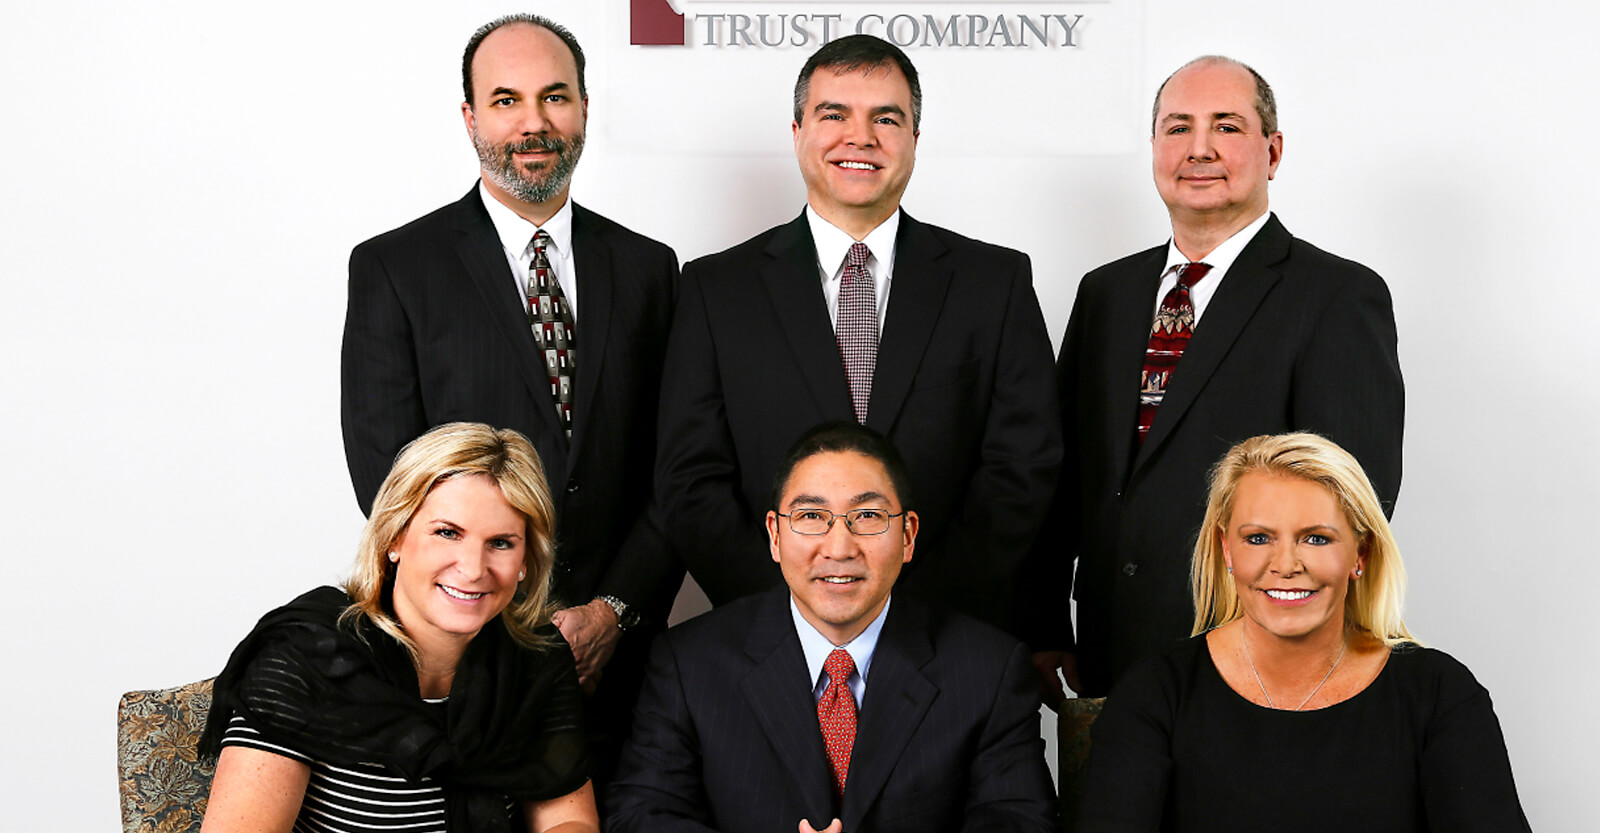 FIRST STATE TRUST COMPANY EXECUTIVE TEAM